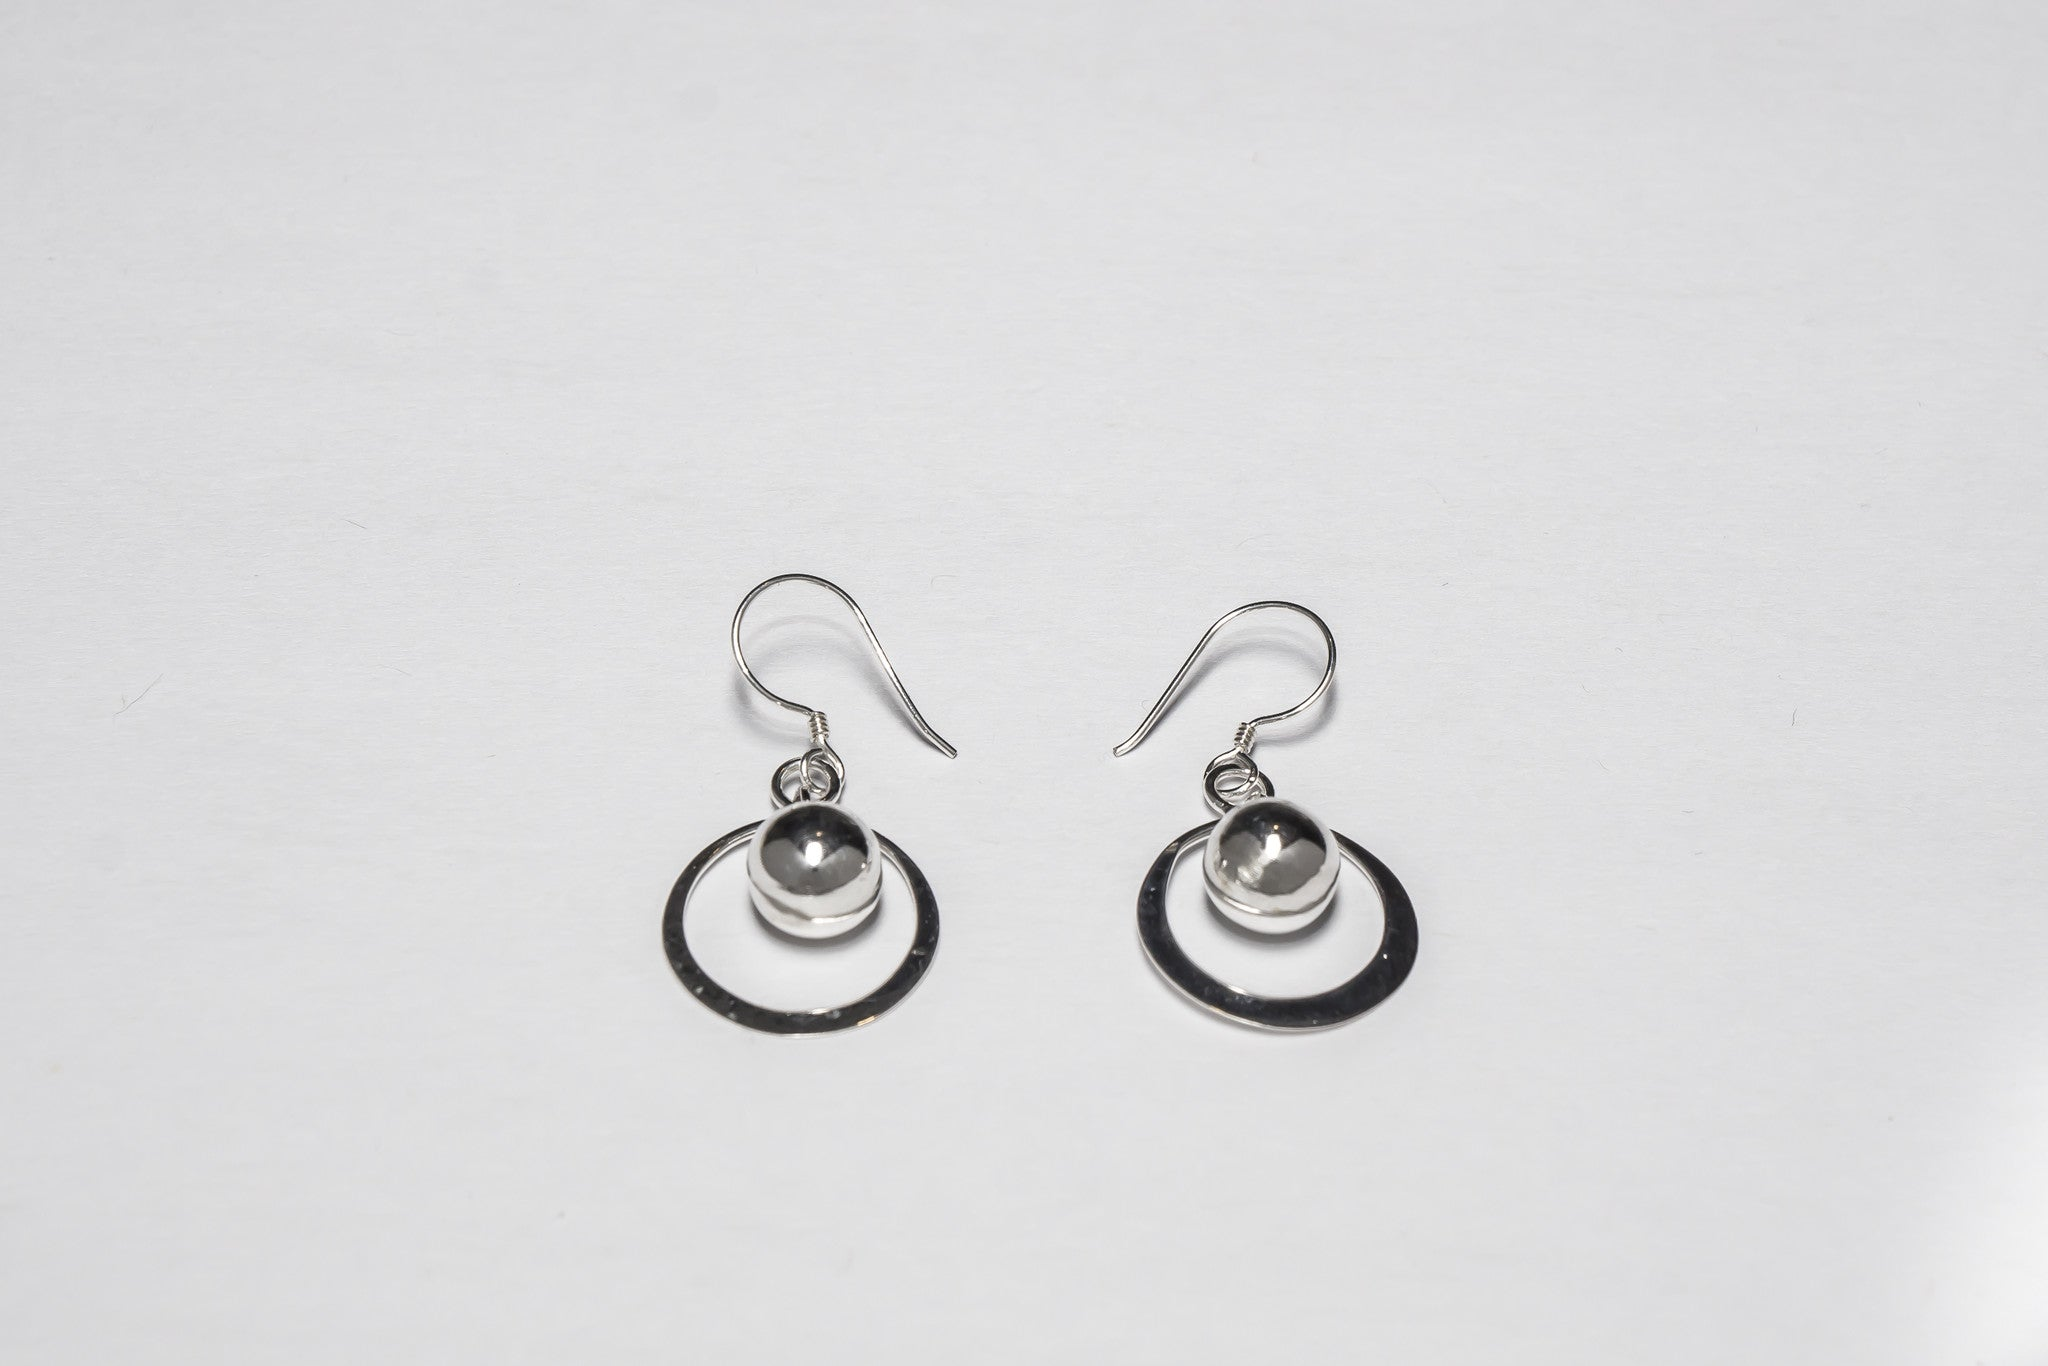 Sterling Silver .925 jewelry, jewellery, jewels, drop earrings, hoop earrings, stud earrings, pendants, bangles, bracelets, necklace, rings, sets, Toronto, Ontario, Canada, Mexico, Mexican, handcrafts, handmade, artisans